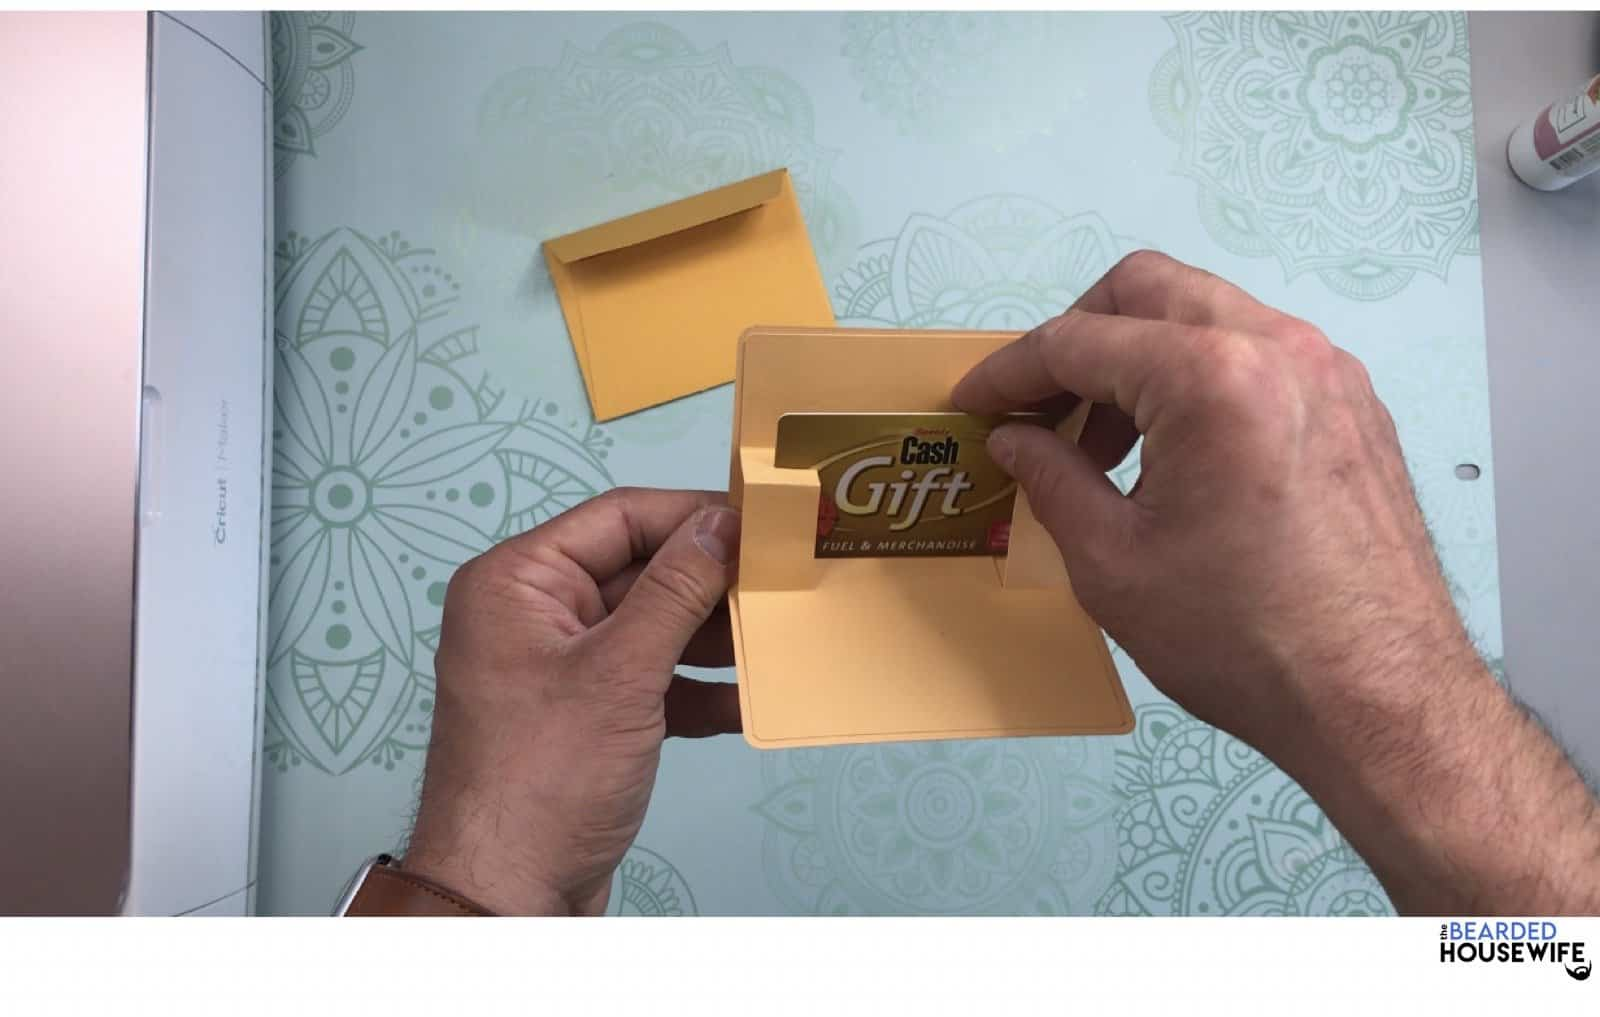 slide your gift card into the slot on the pop-up